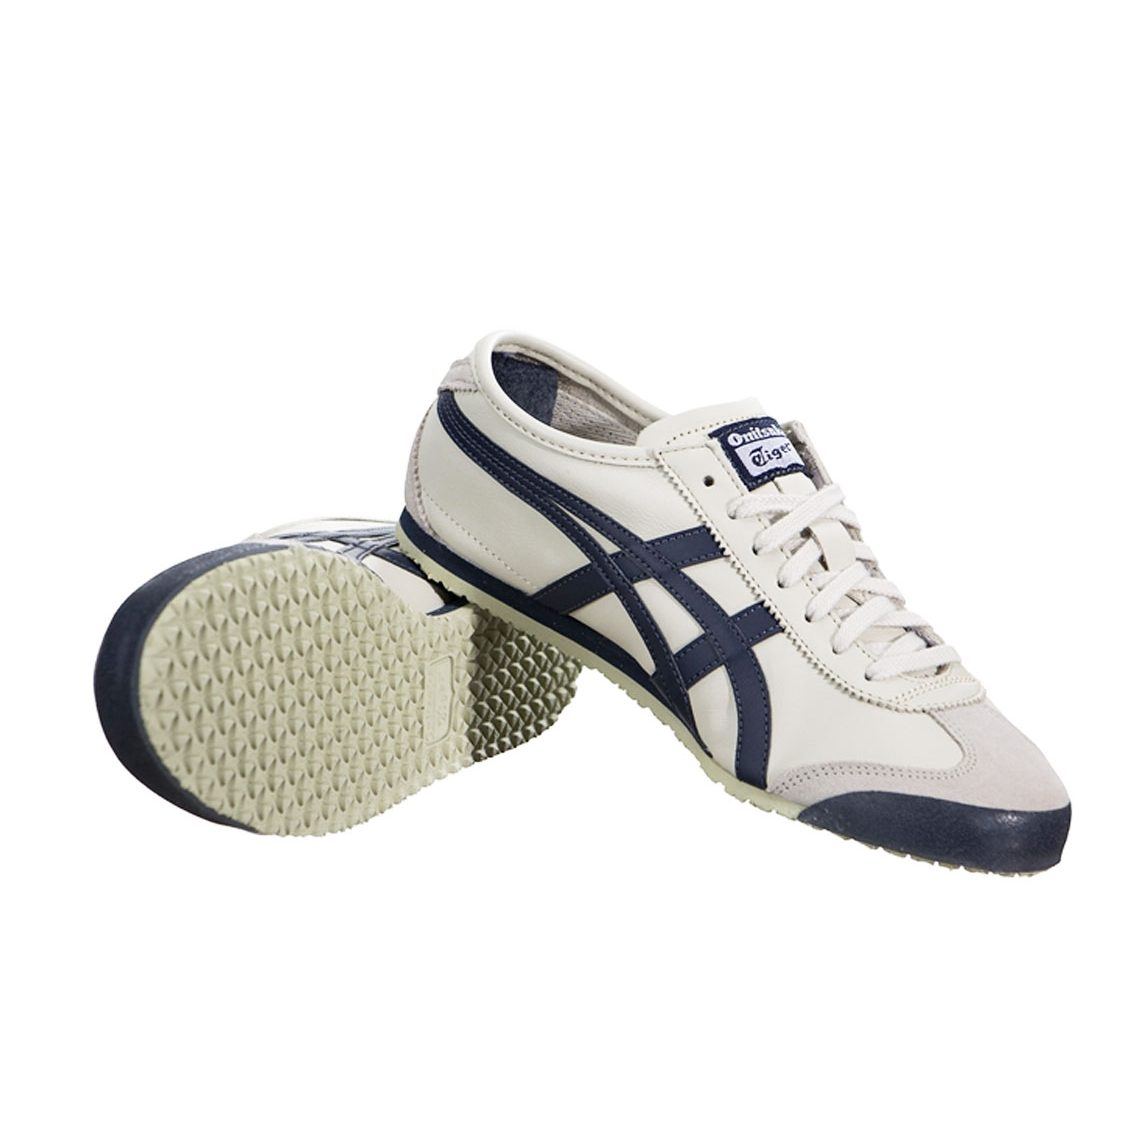 on sale 3363c 3969f Onitsuka Tiger Mexico 66 Birch/Ink/Latte Women's